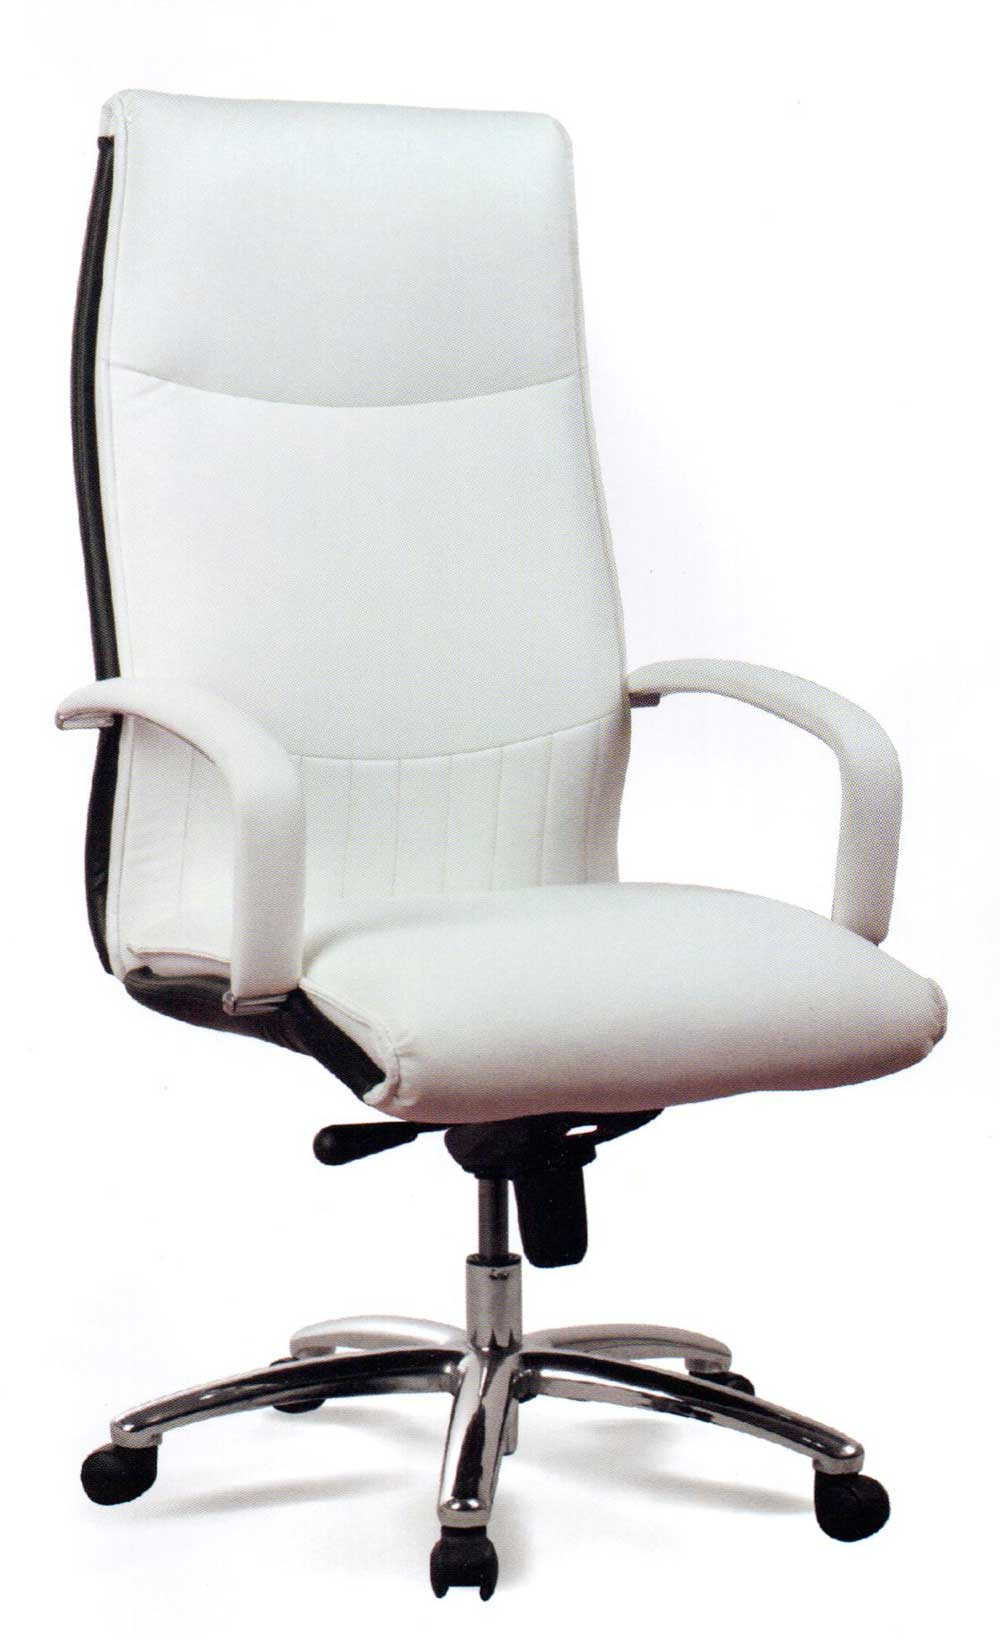 Ergonomic executive white leather office chair